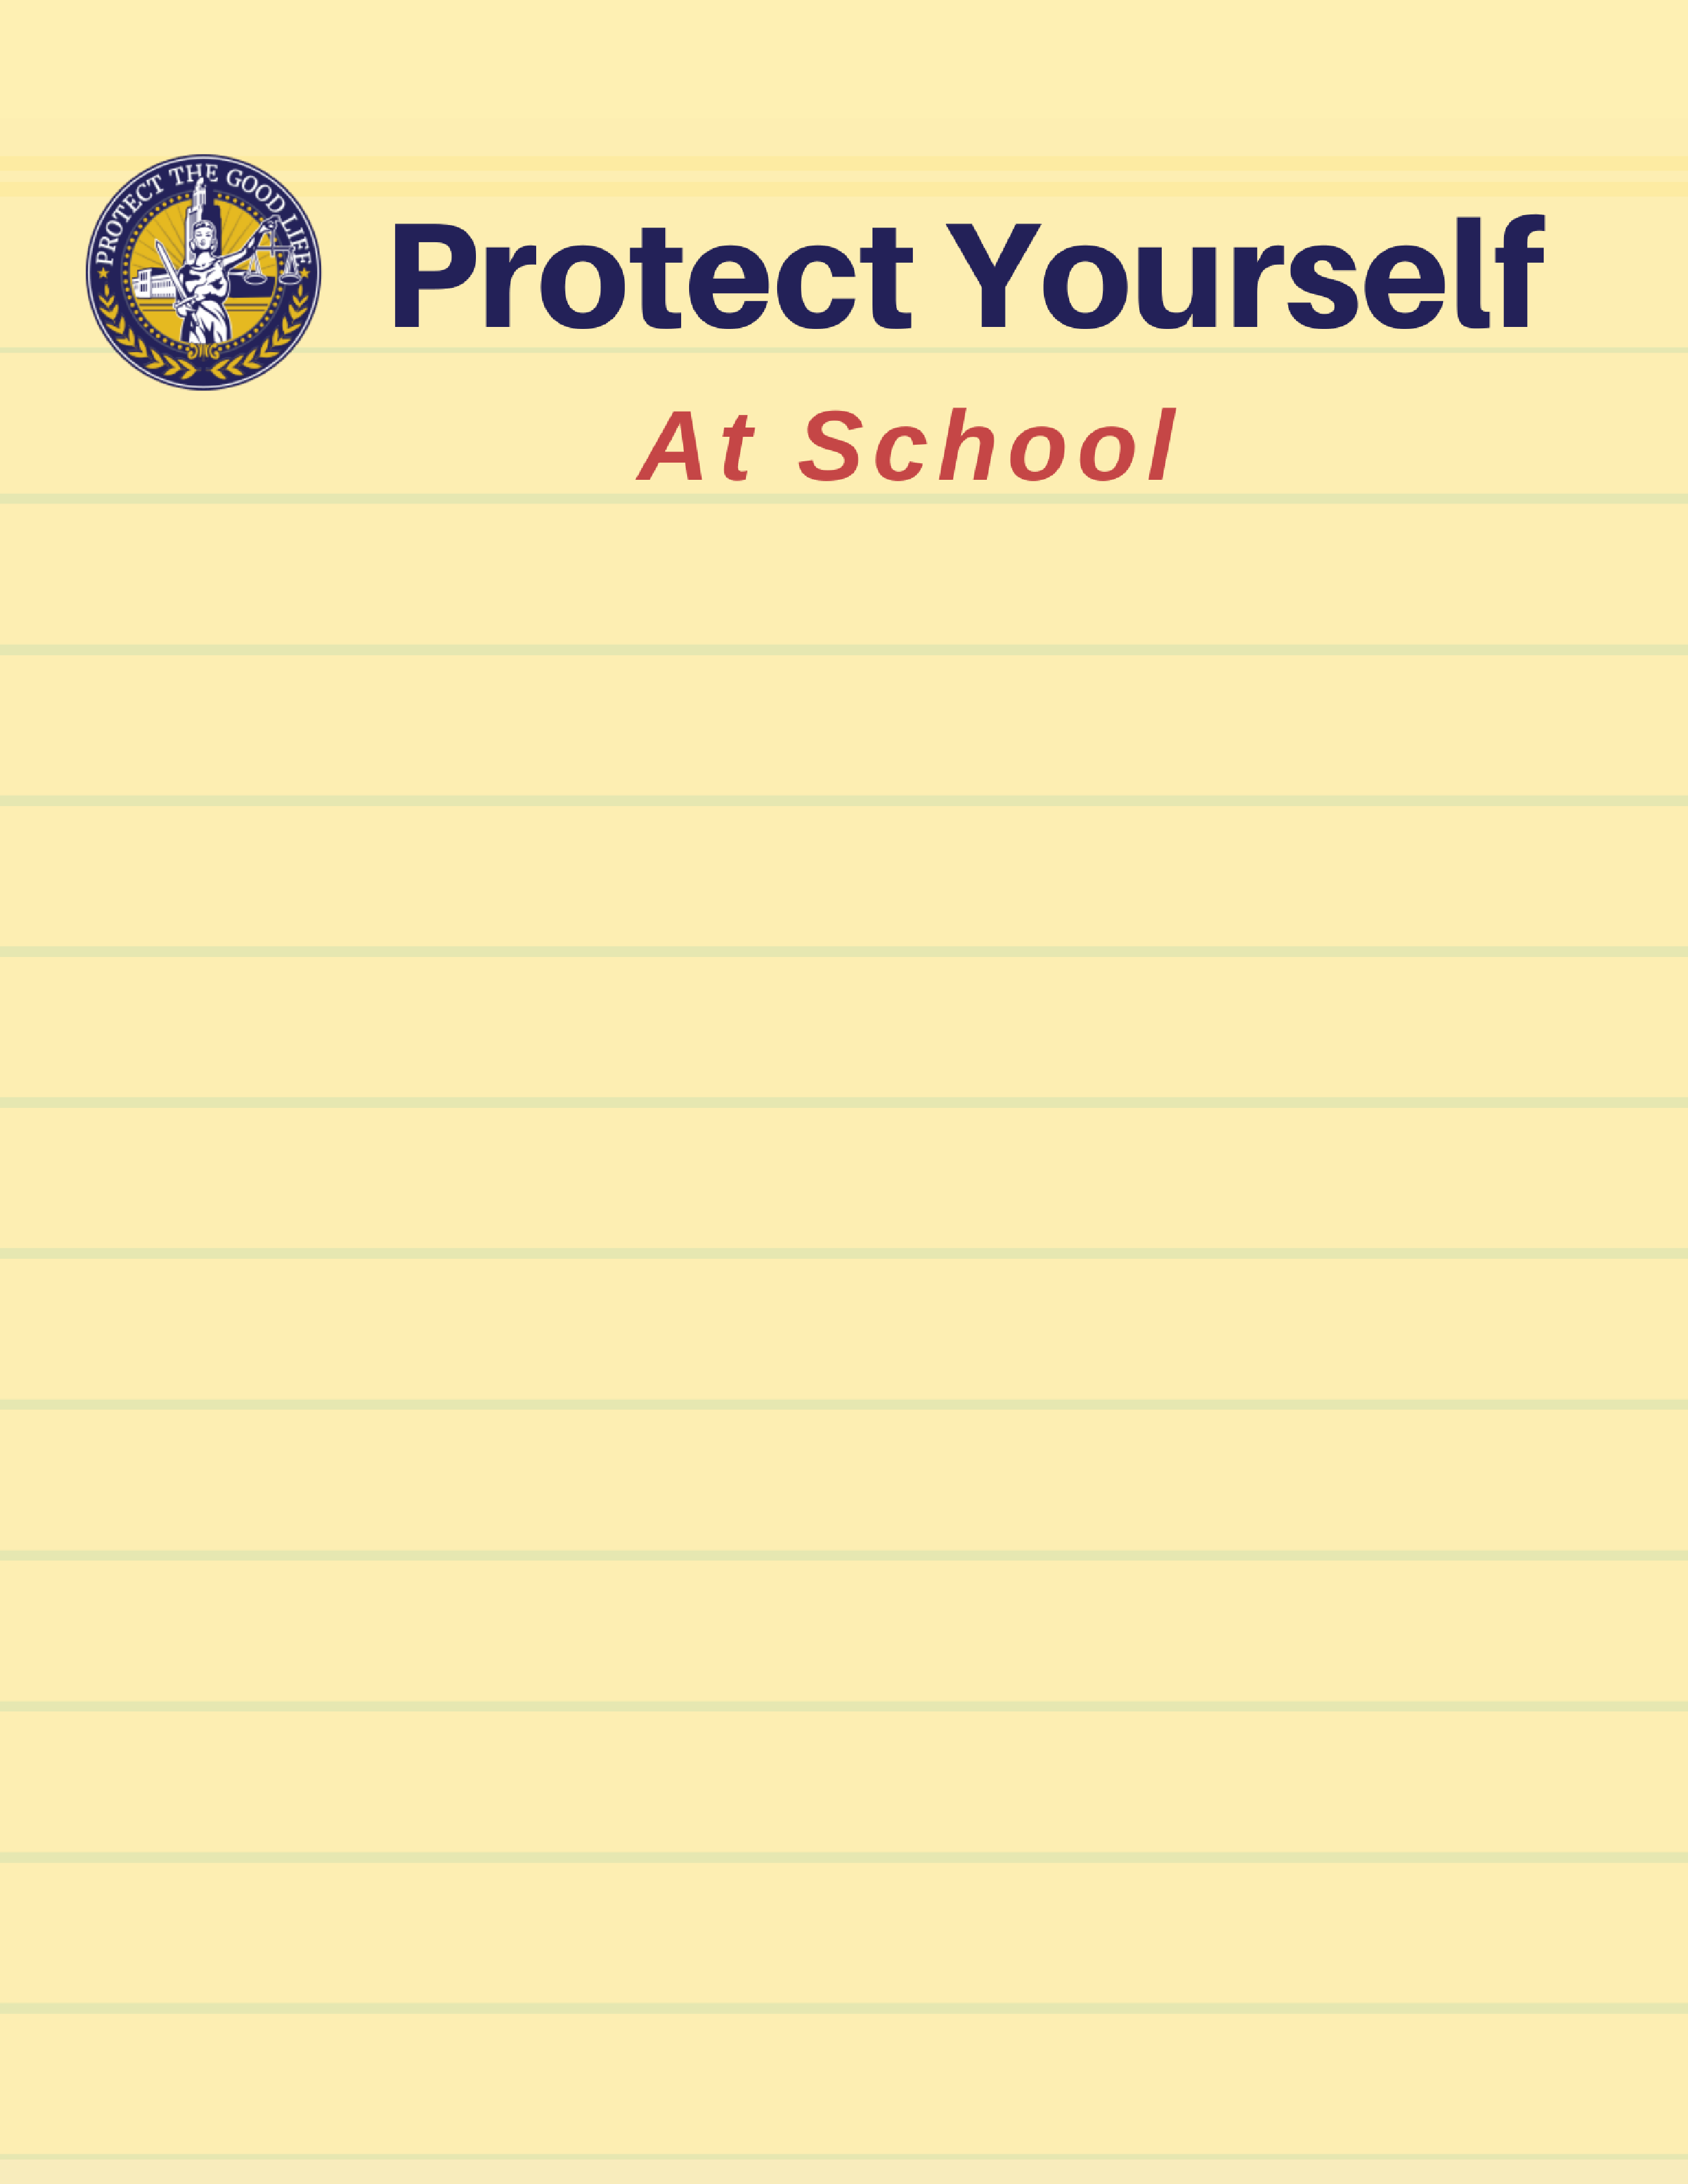 Protect Yourself Background Image